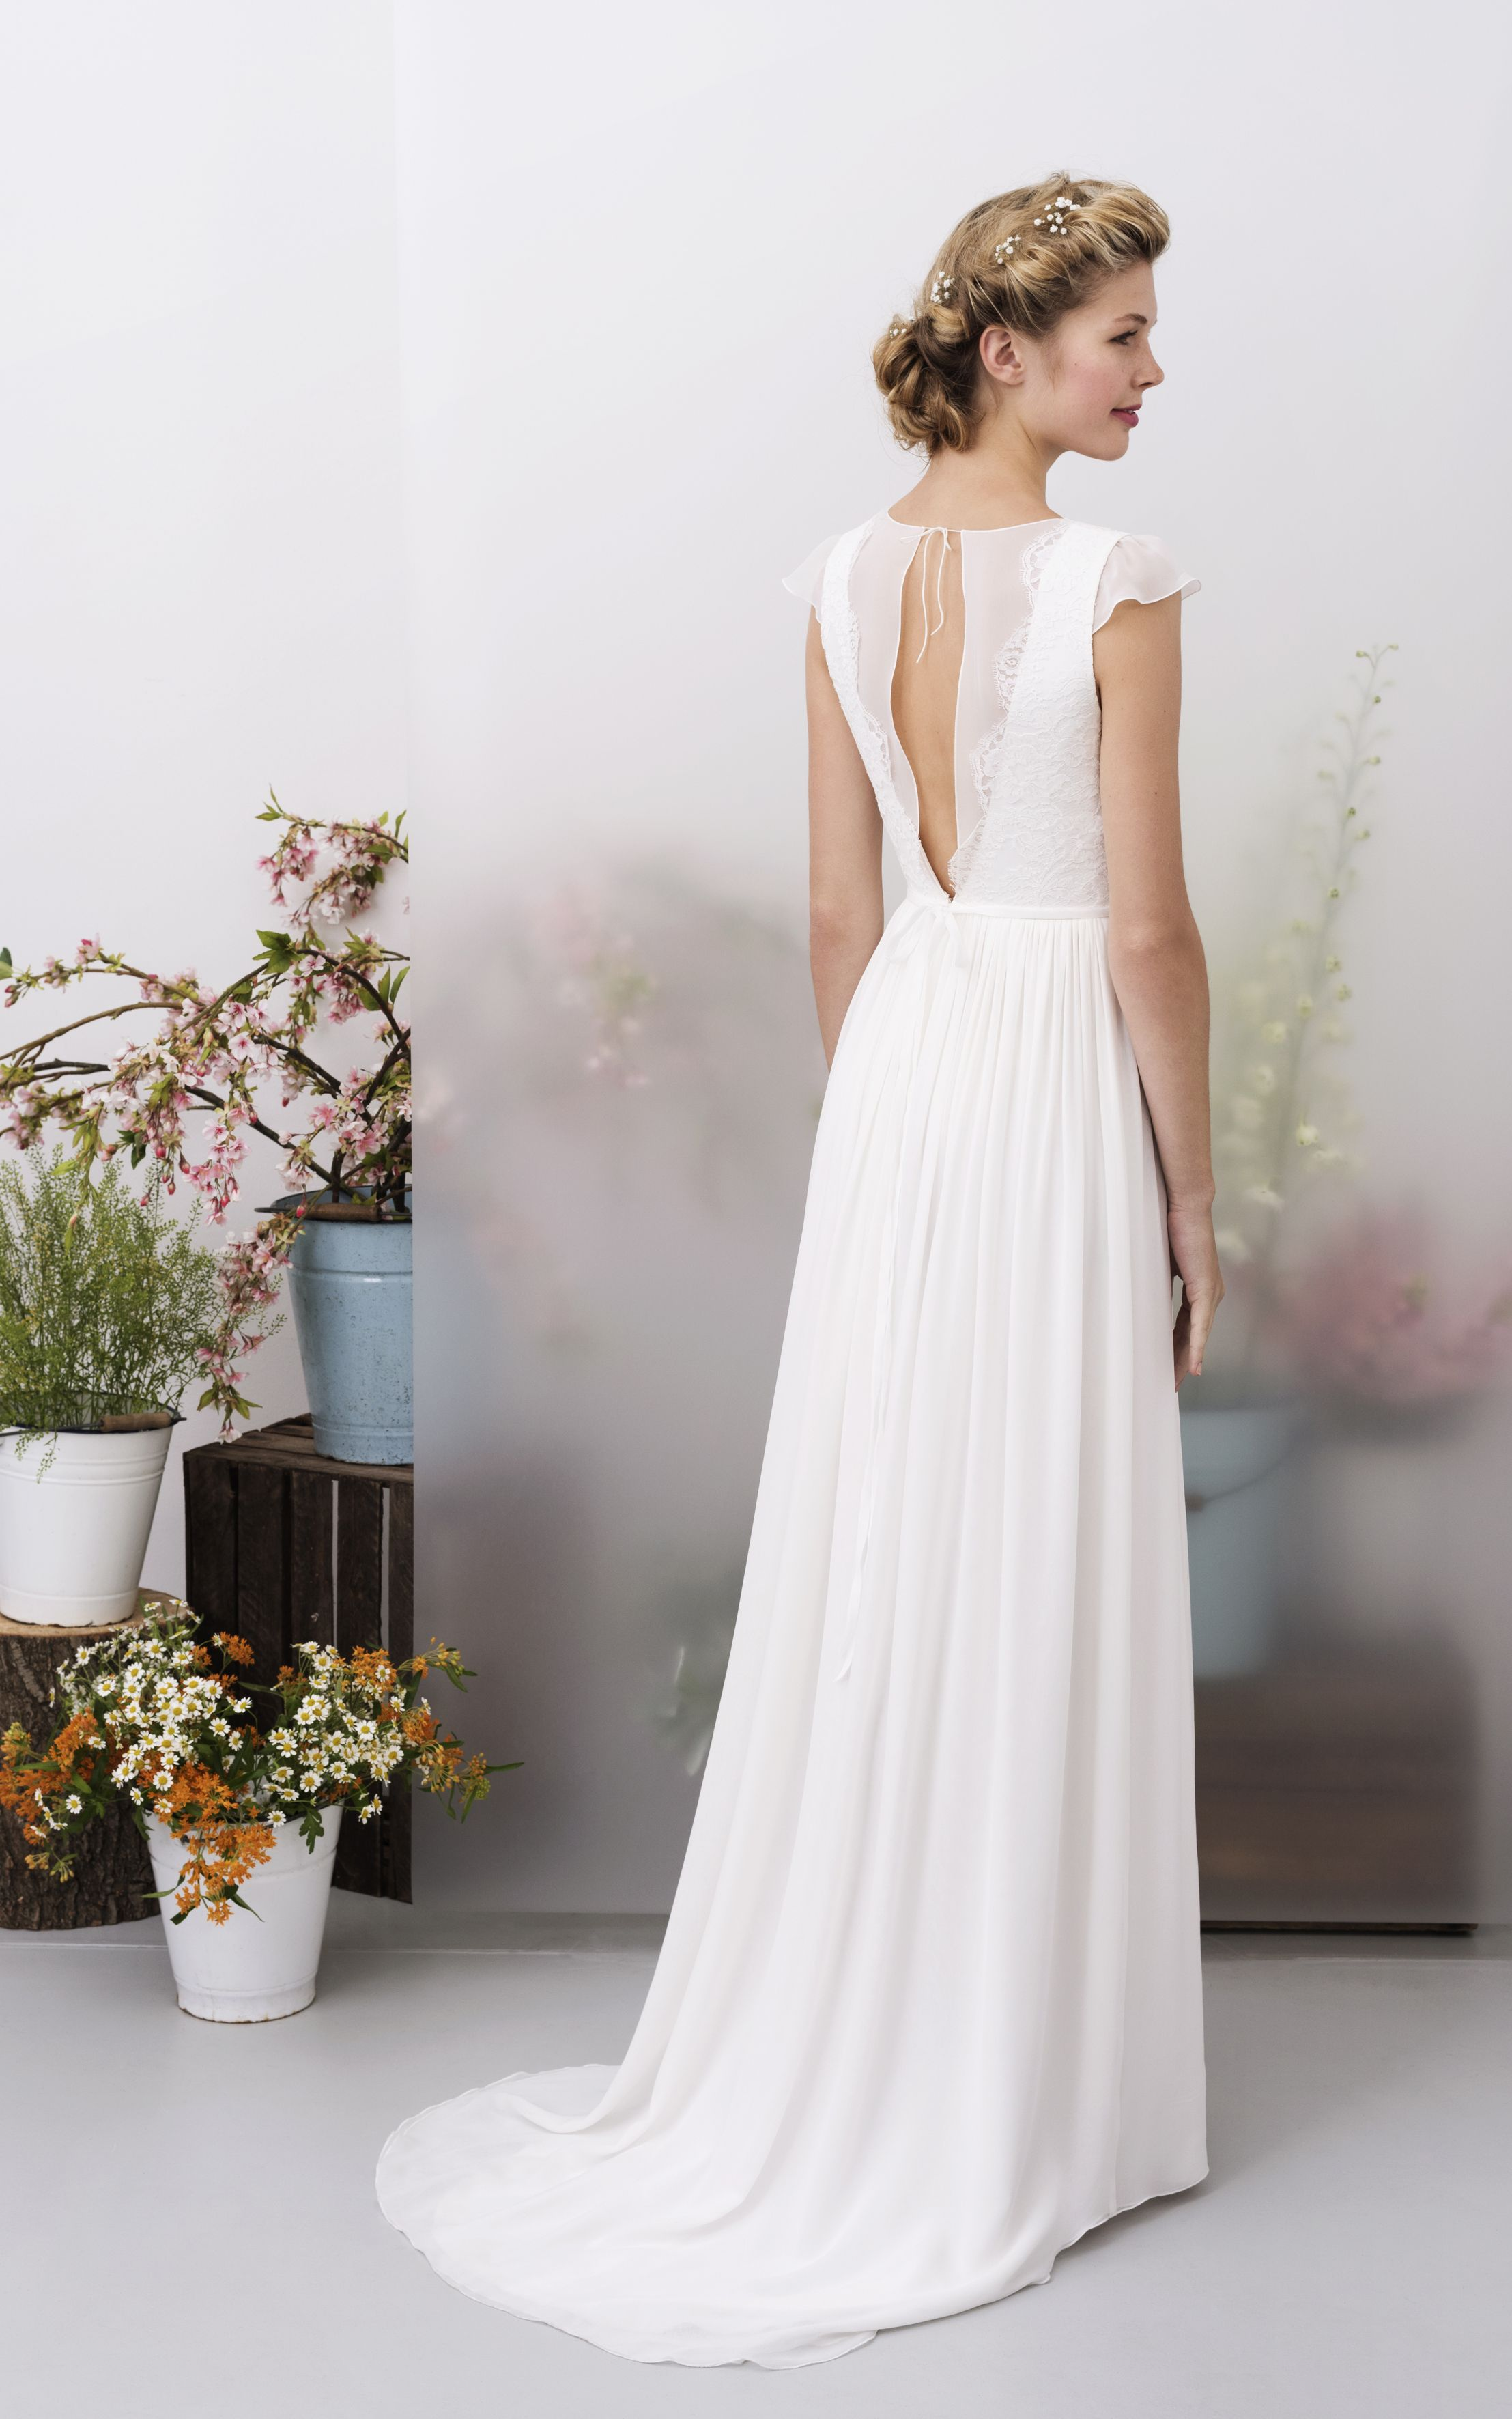 kisui OUI Collection Bridal Style: inja, Brautkleid, Weddingdress by ...